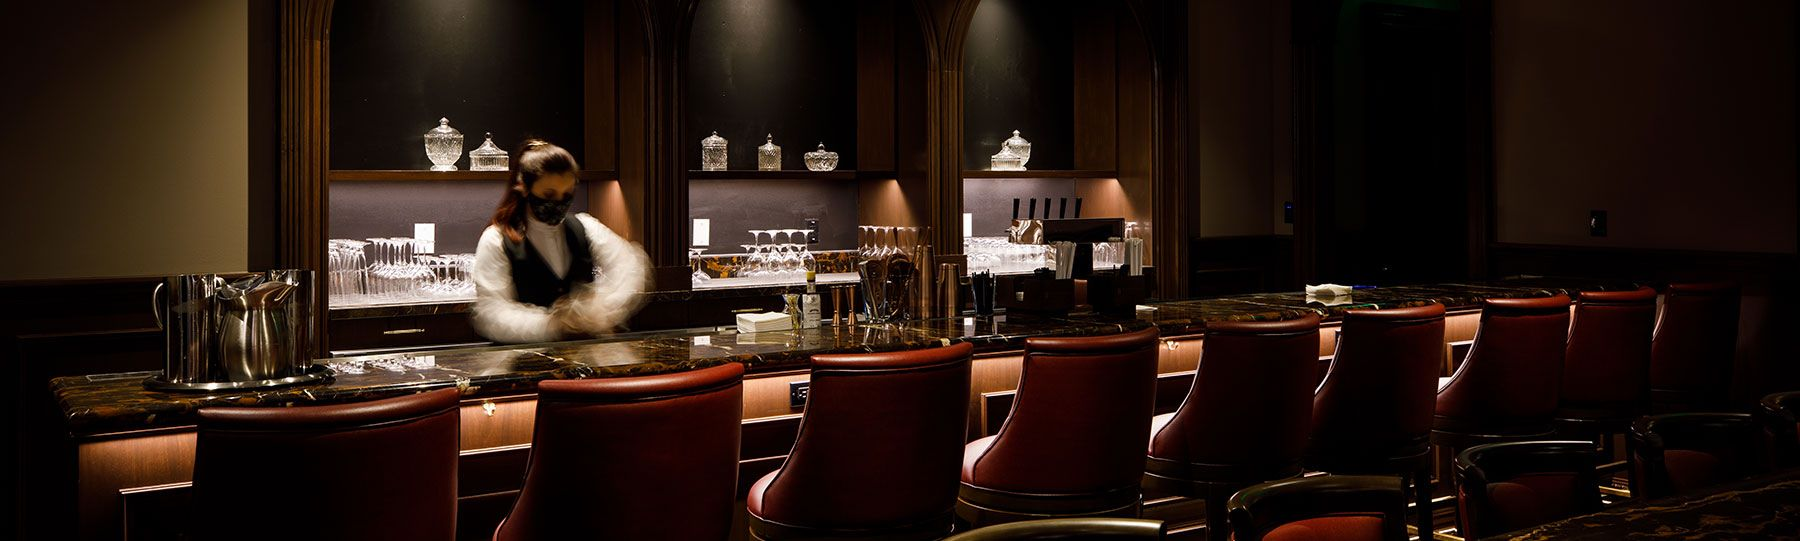 Feinstein's at Hotel Carmichael, Carmel IN - Contact Us